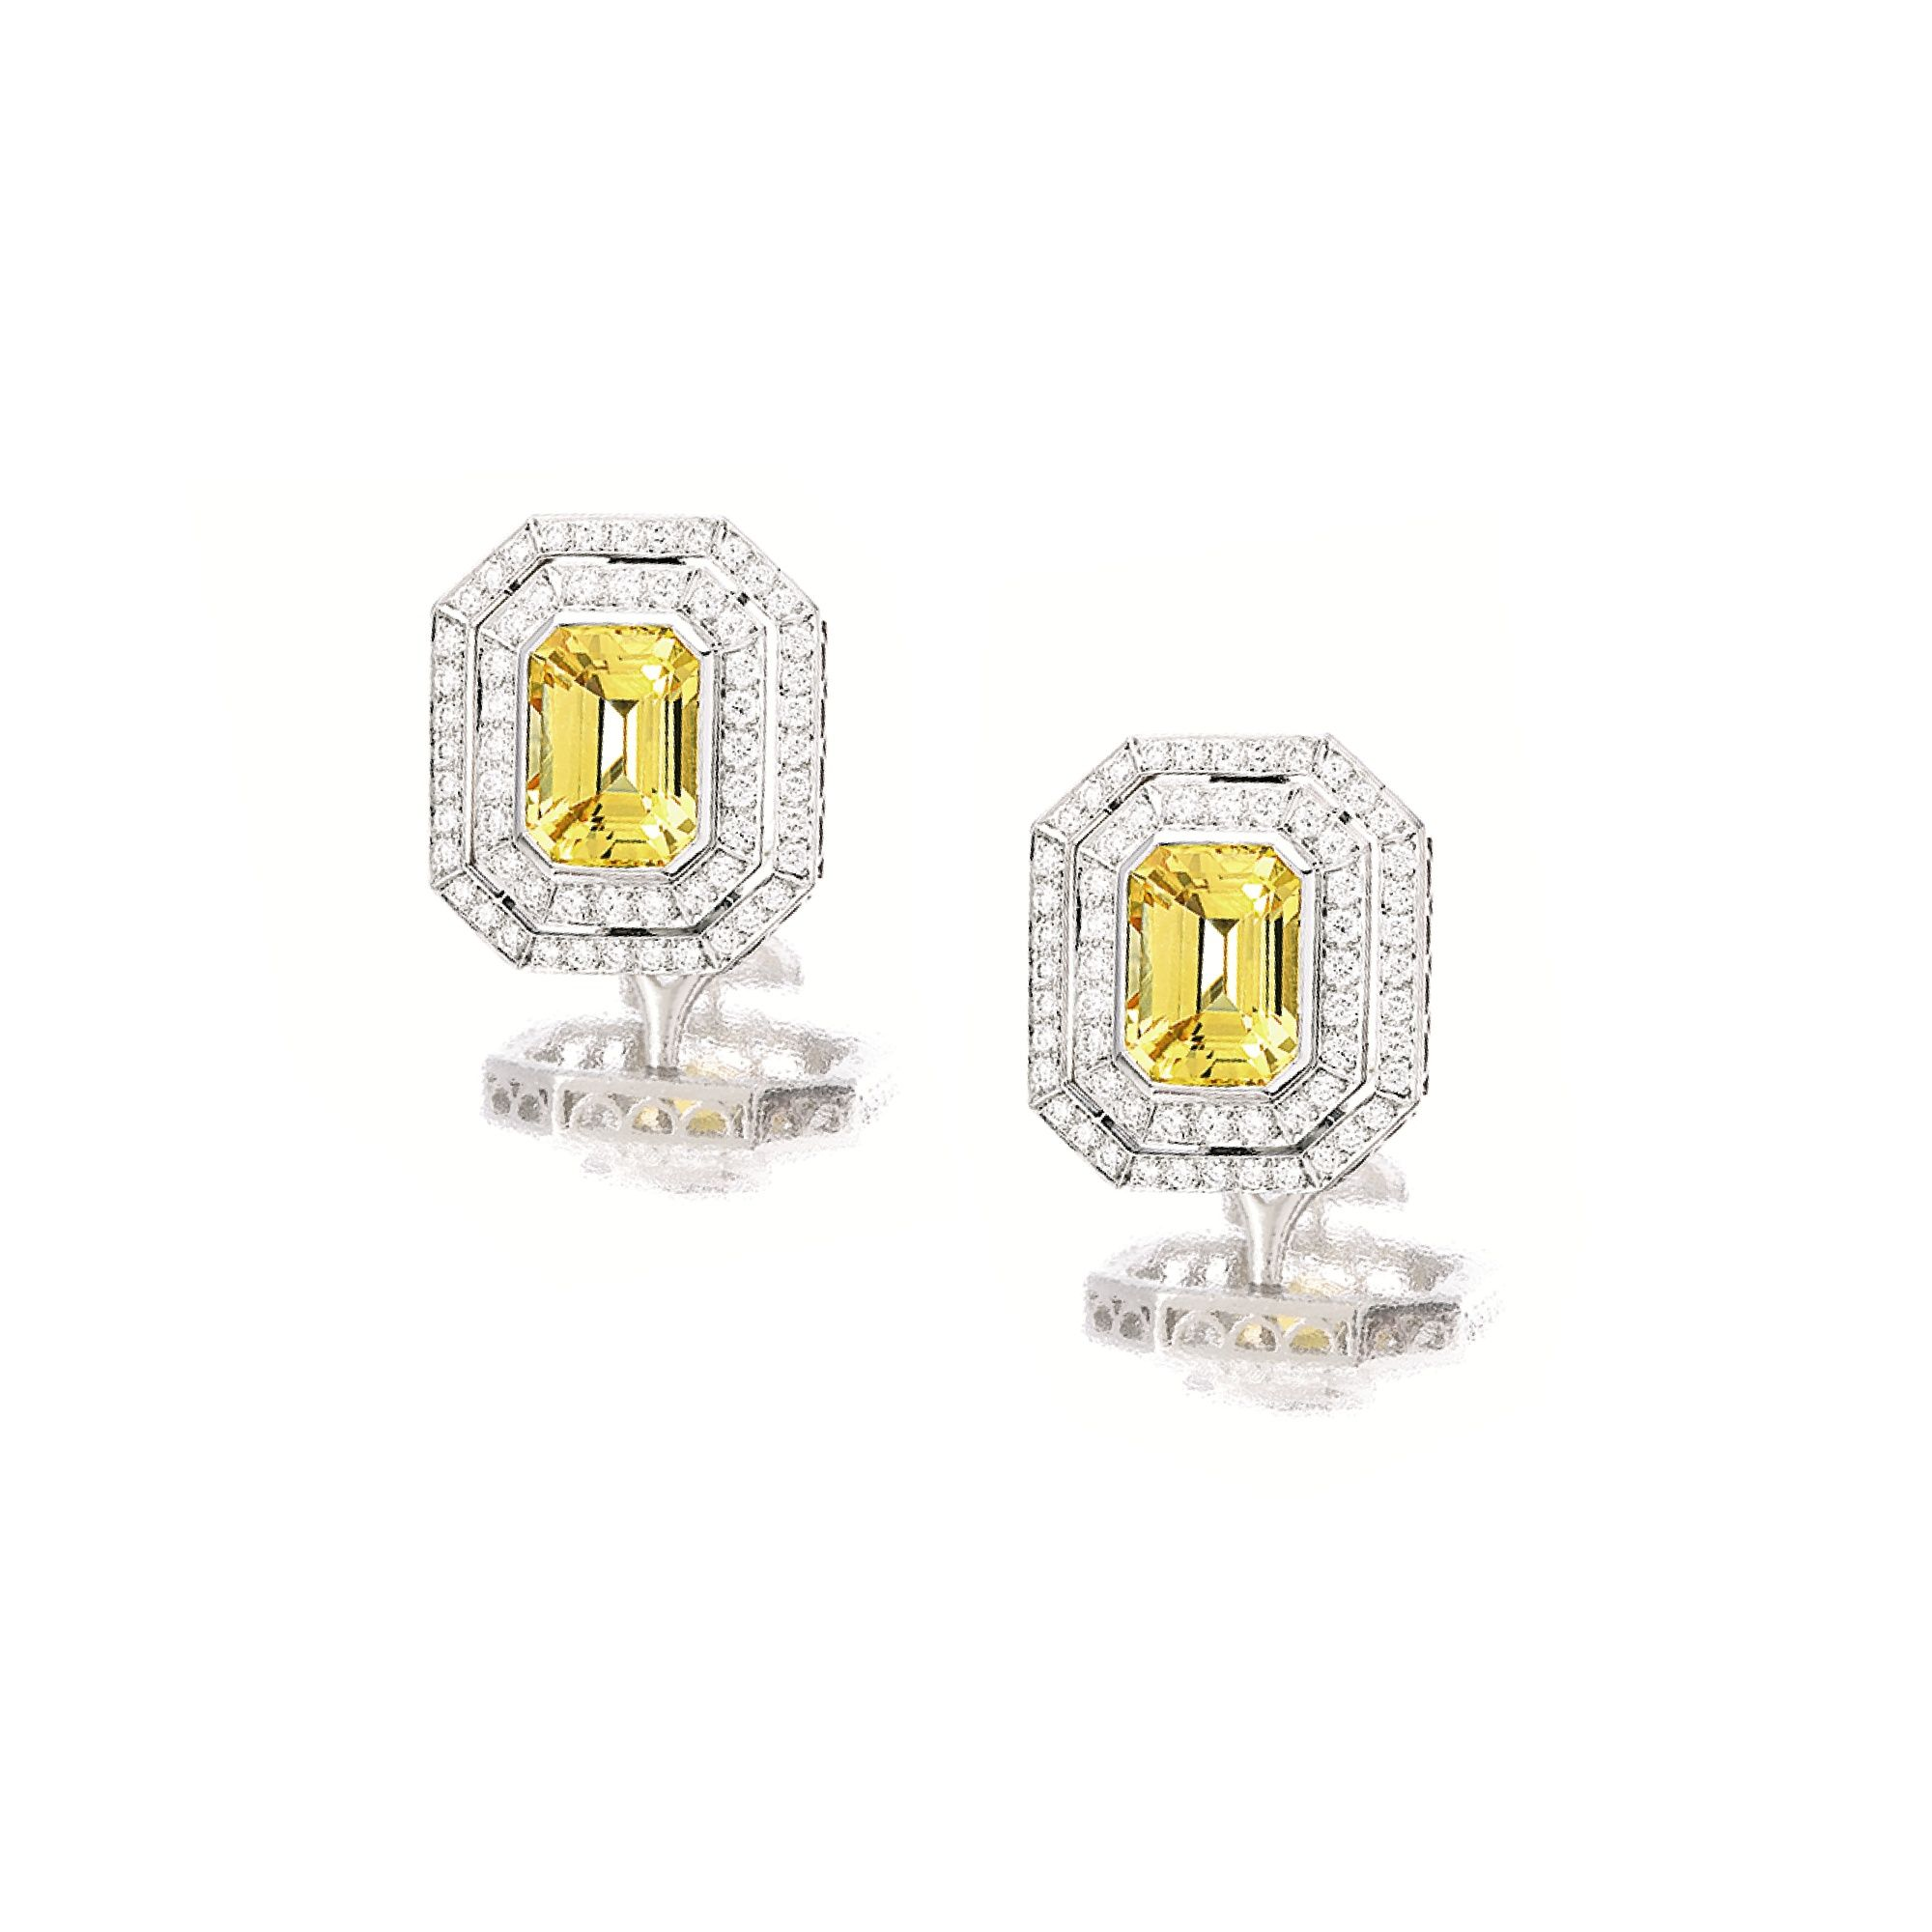 schlumberger tiffany diamond jean earrings pin gold yellow co